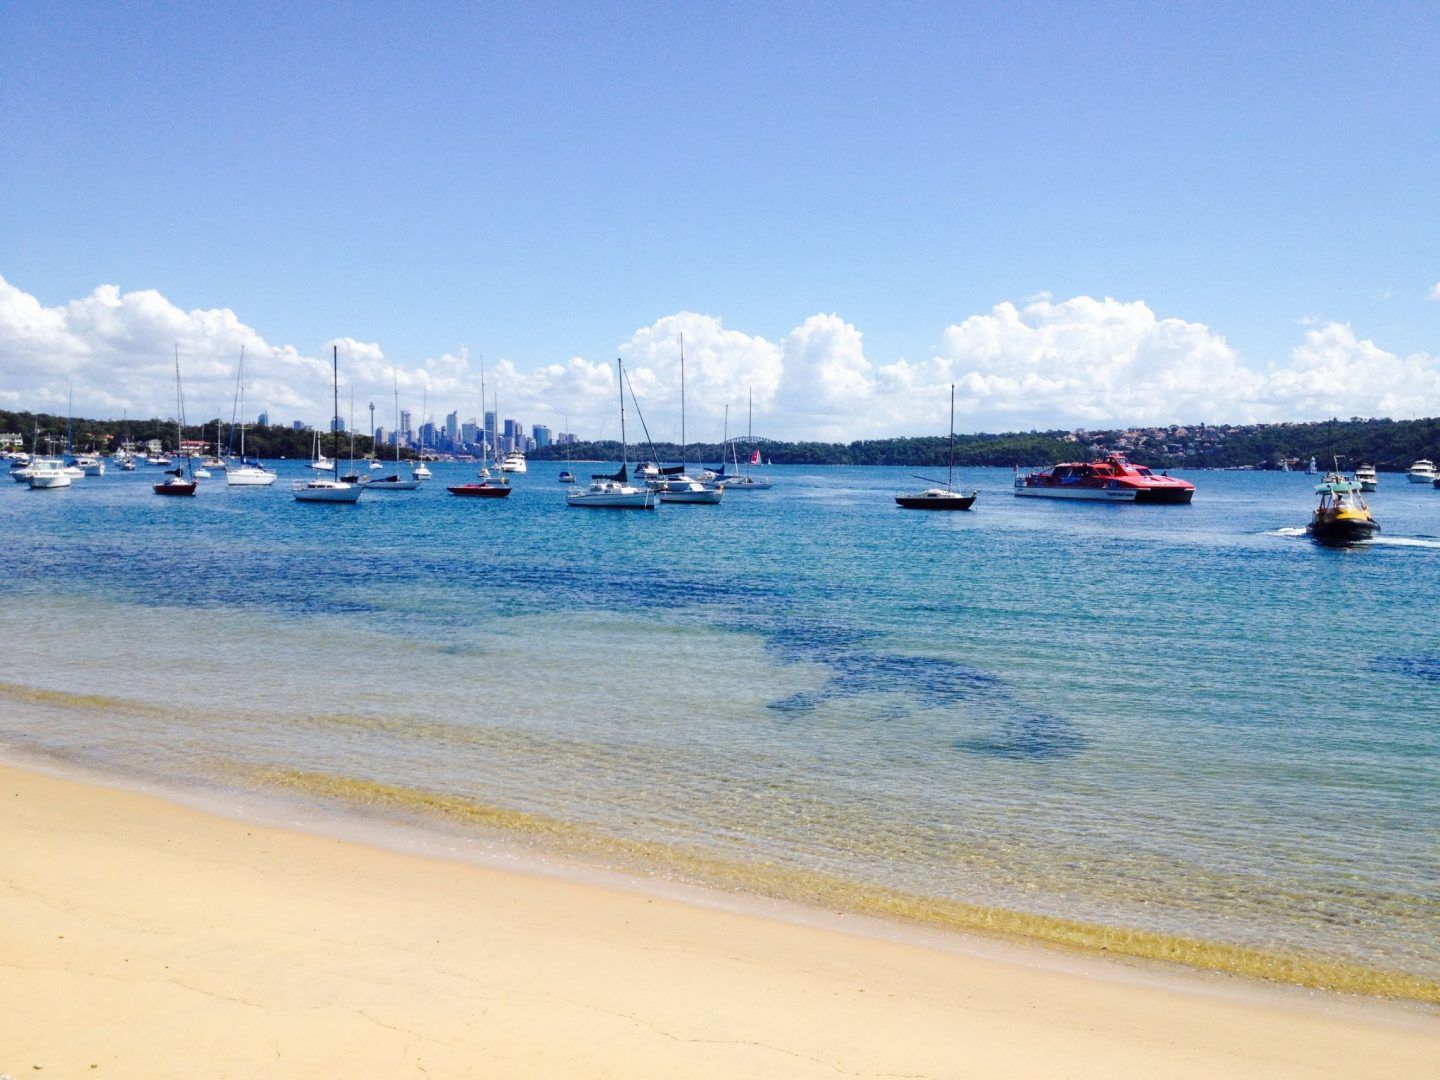 View to Sydney from Watsons Bay